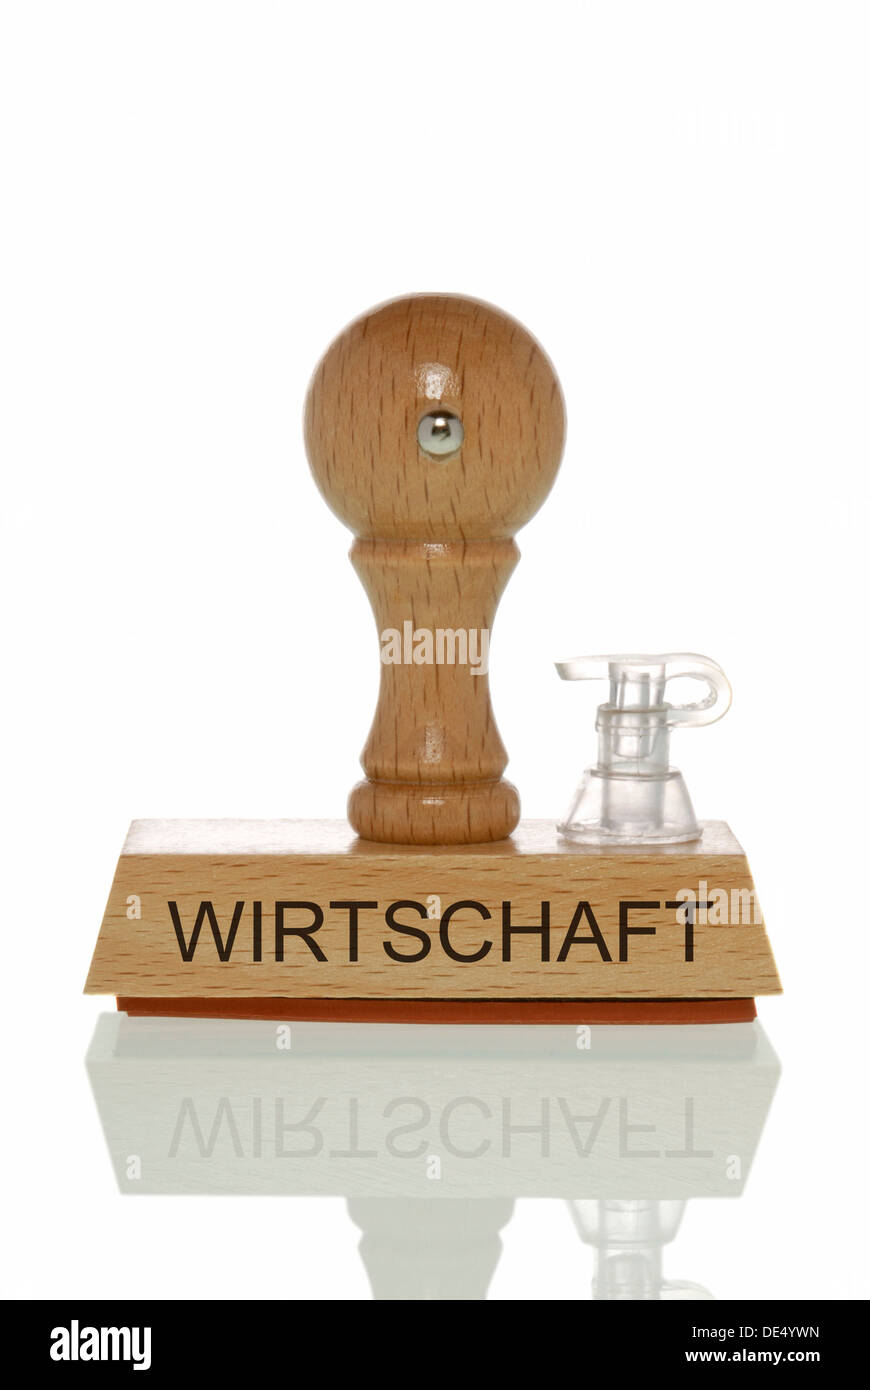 Stamp with the word 'Wirtschaft', economy with an closed valve, symbolic image for an inflated economy - Stock Image